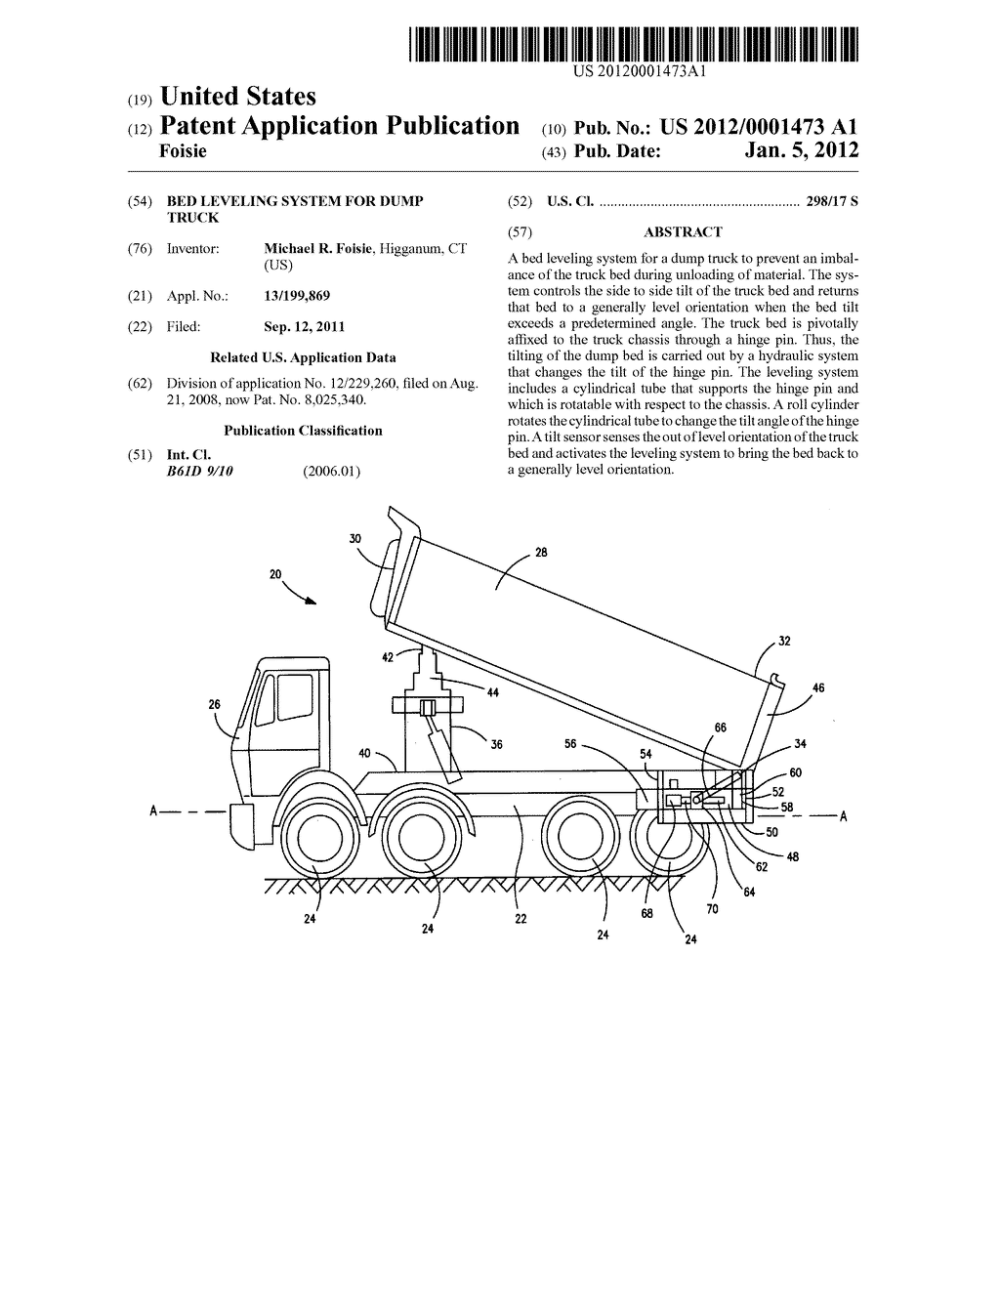 medium resolution of bed leveling system for dump truck diagram schematic and image 01 rh patentsencyclopedia com dump bed switch dump bed trailer